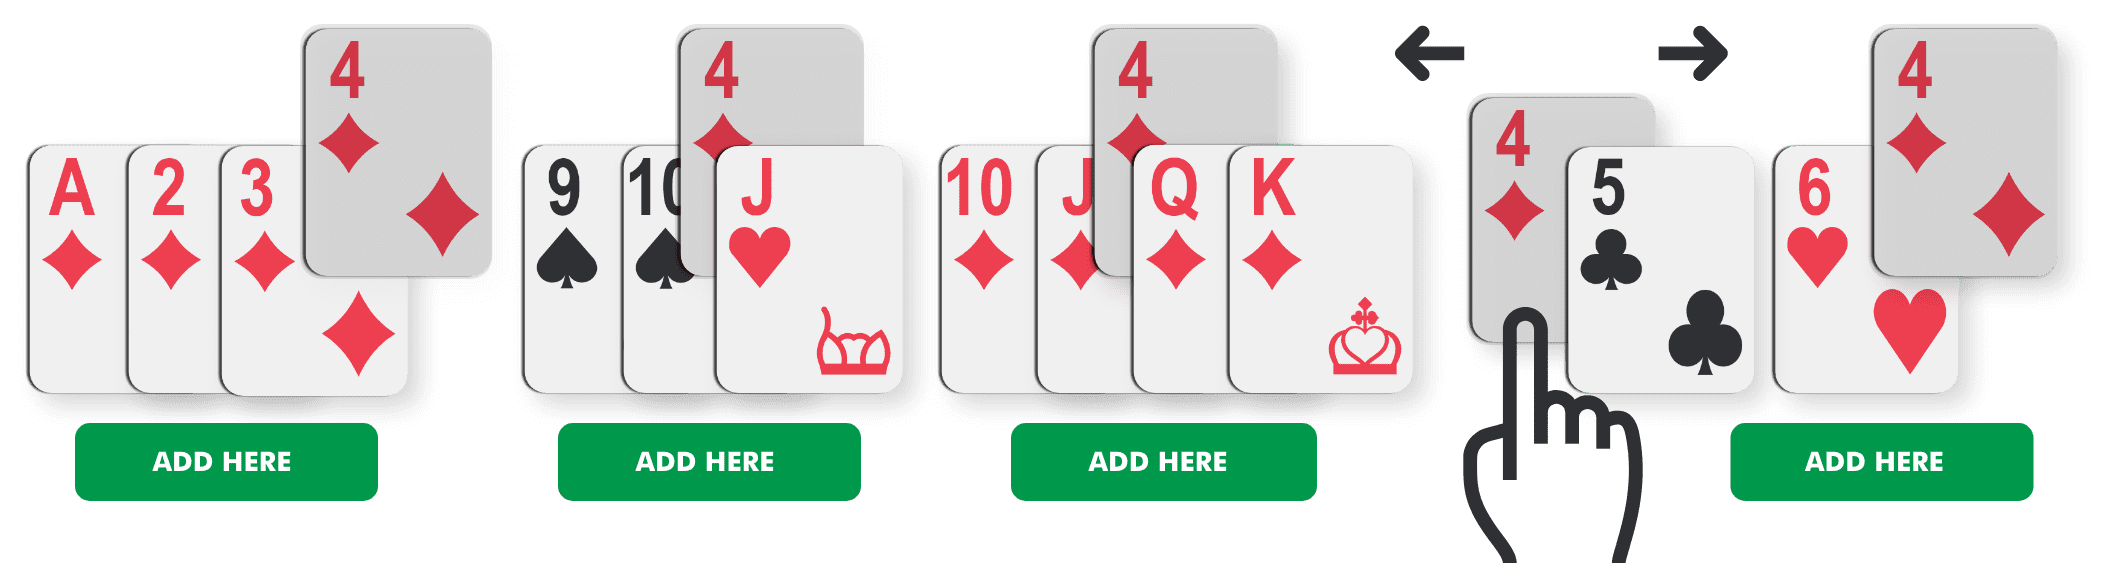 How to Add Rummy Card Game